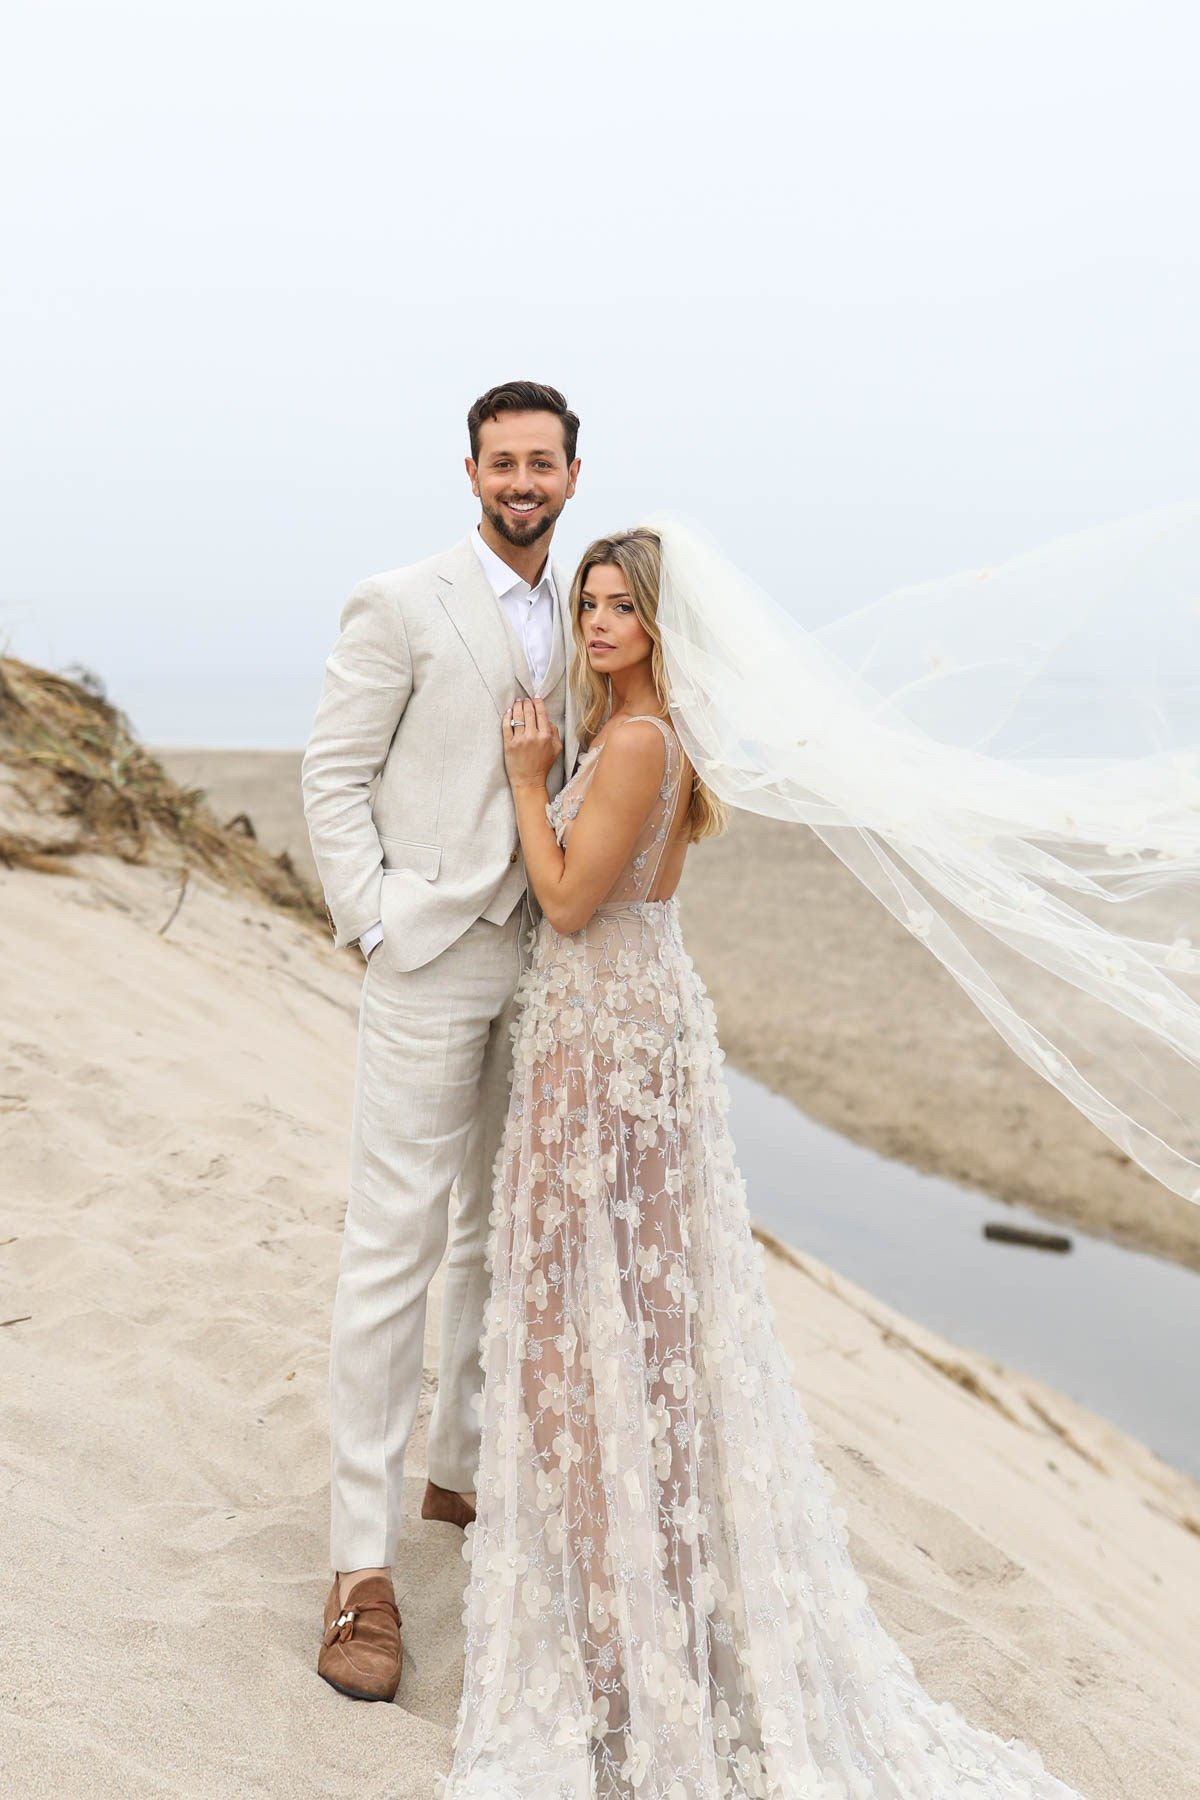 The First Photo Of Ashley Greenes Wedding Dress Is Here